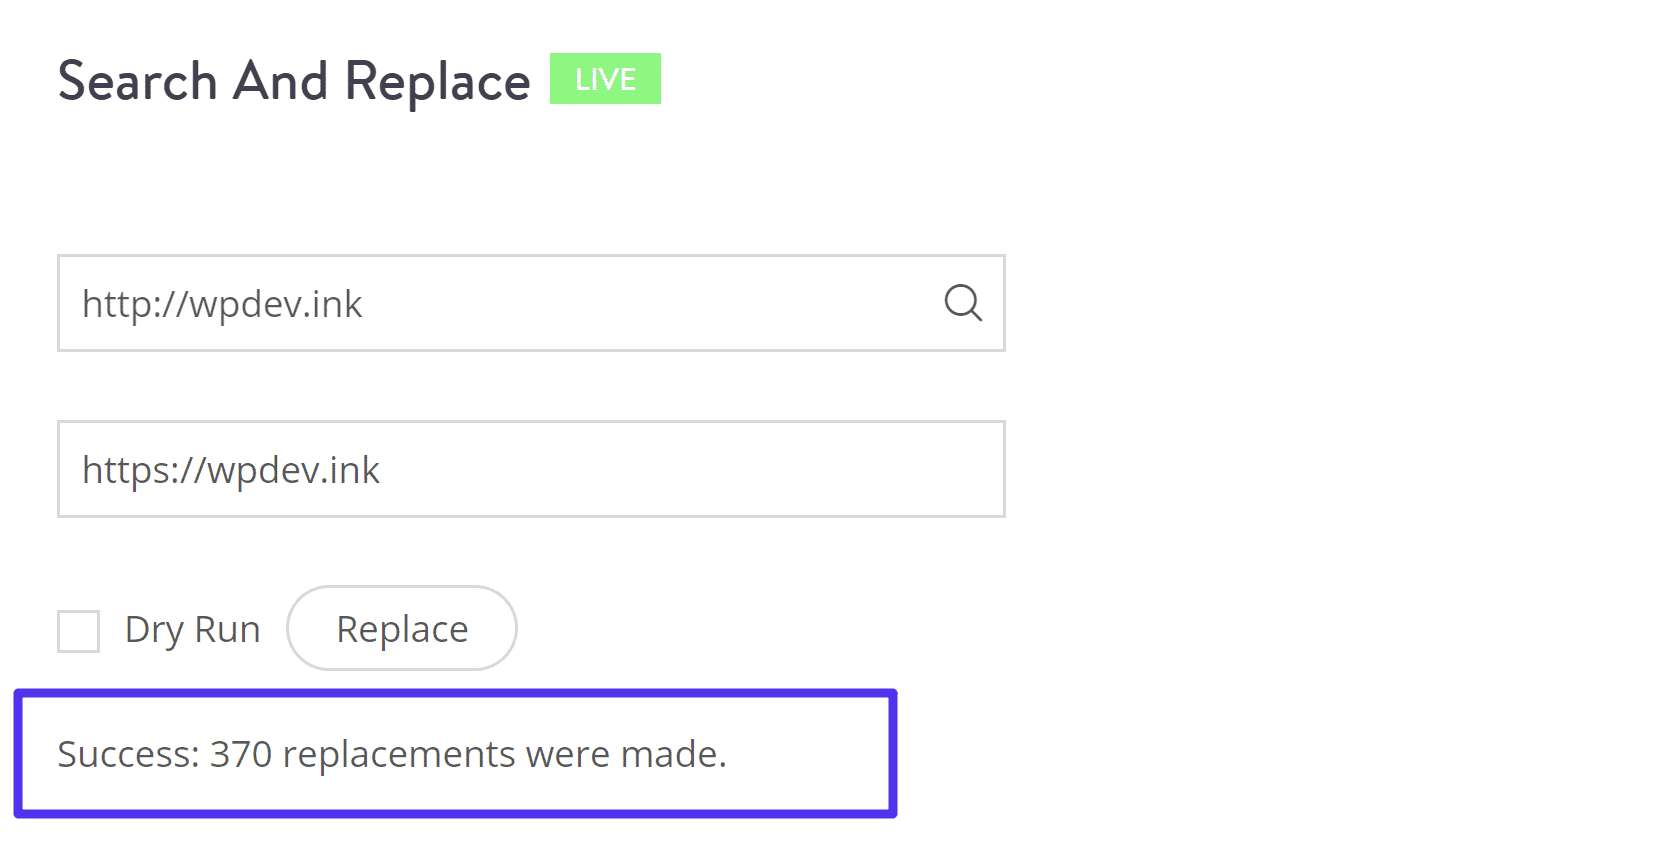 Confirmation on live search and replace